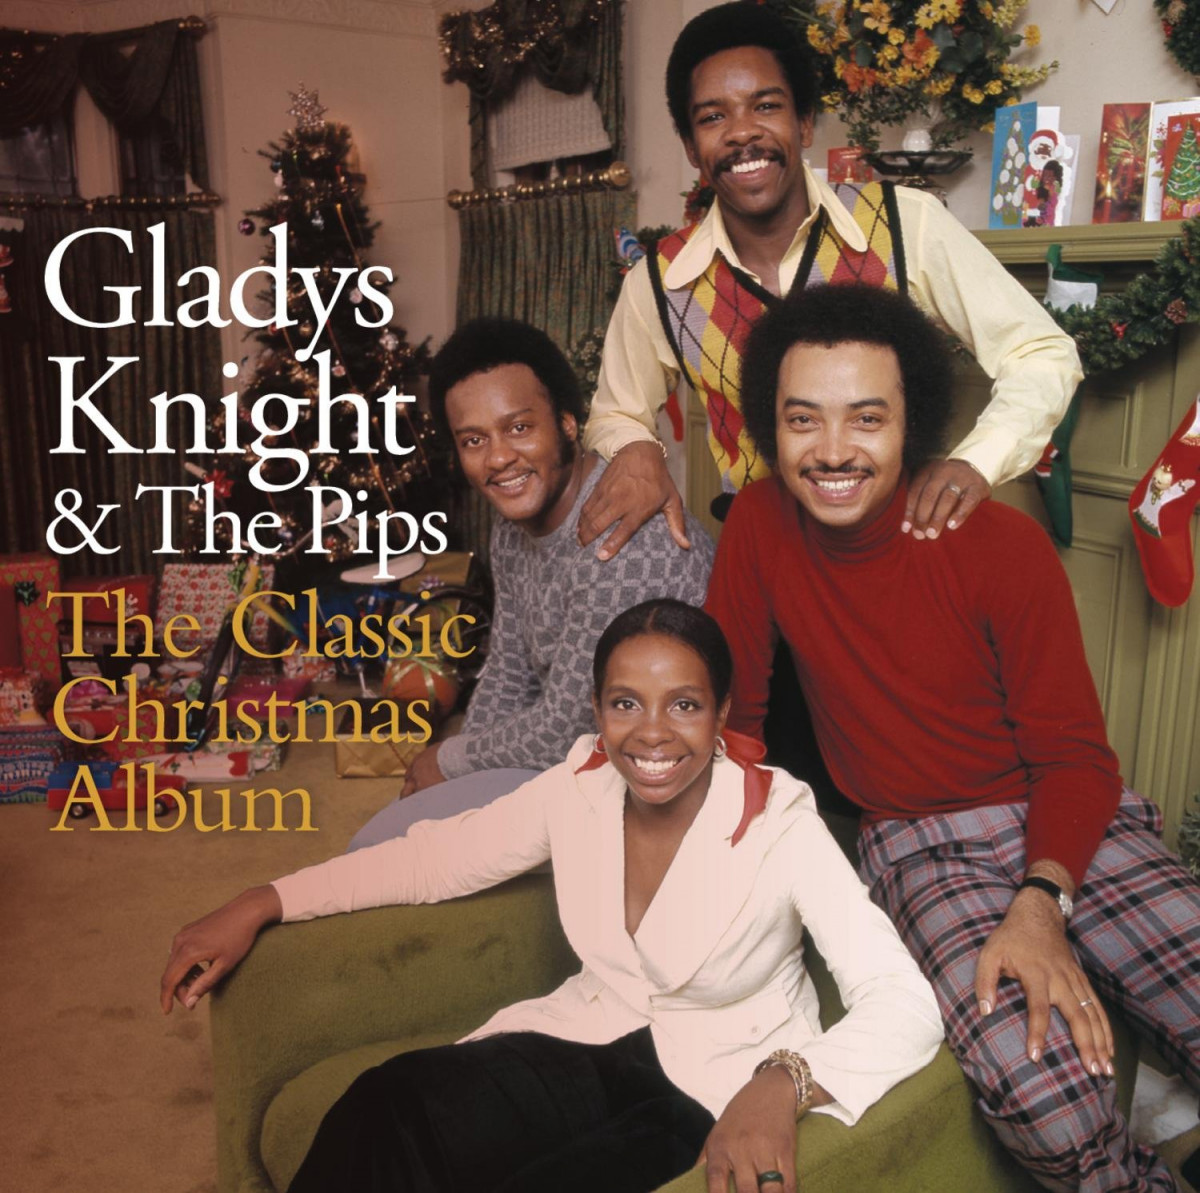 Gladys Knight & Pips - This Christmas